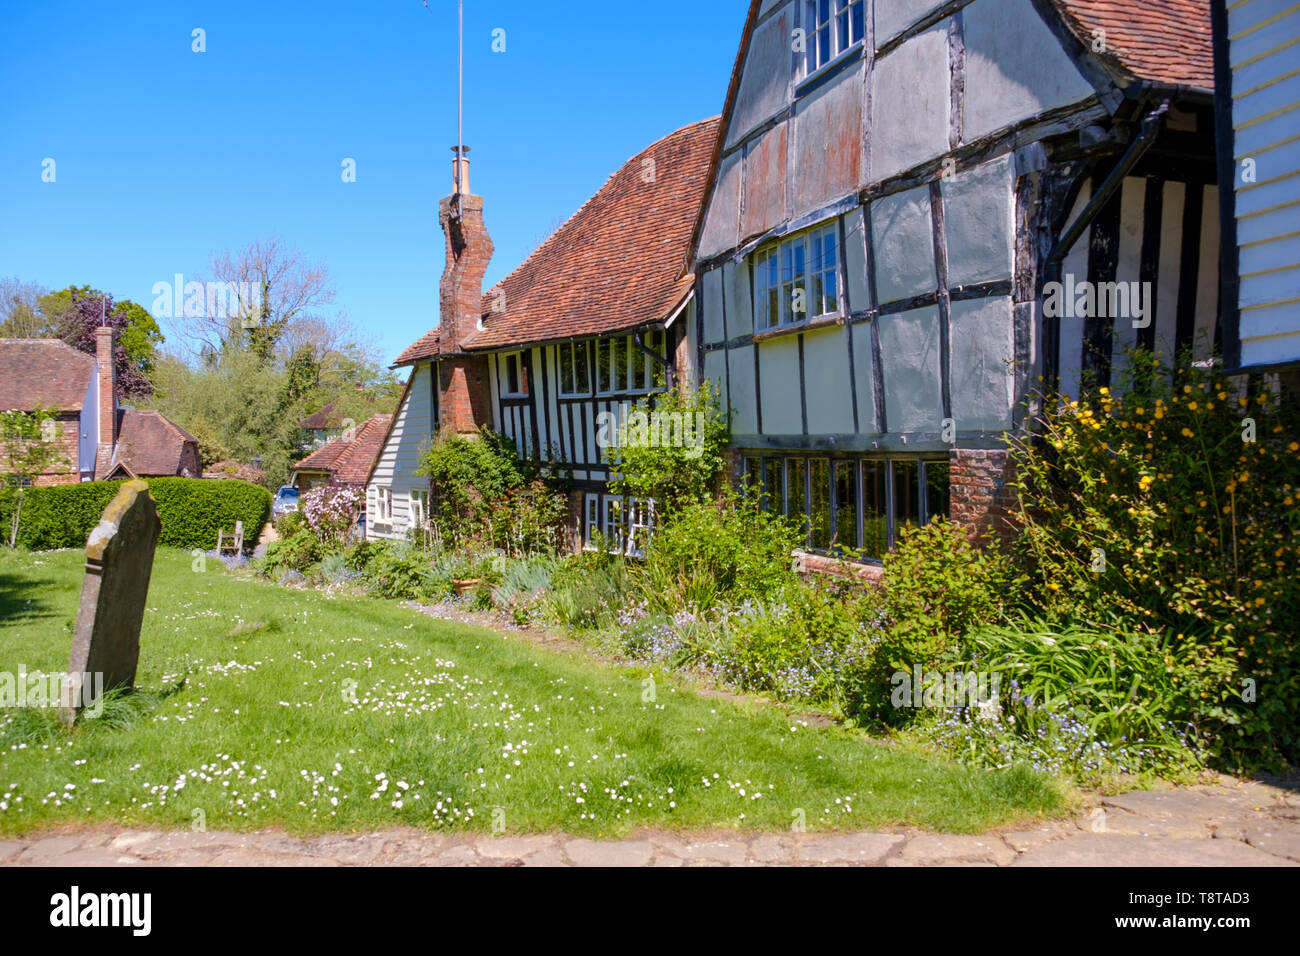 Smarden, Kent, UK - Stock Image